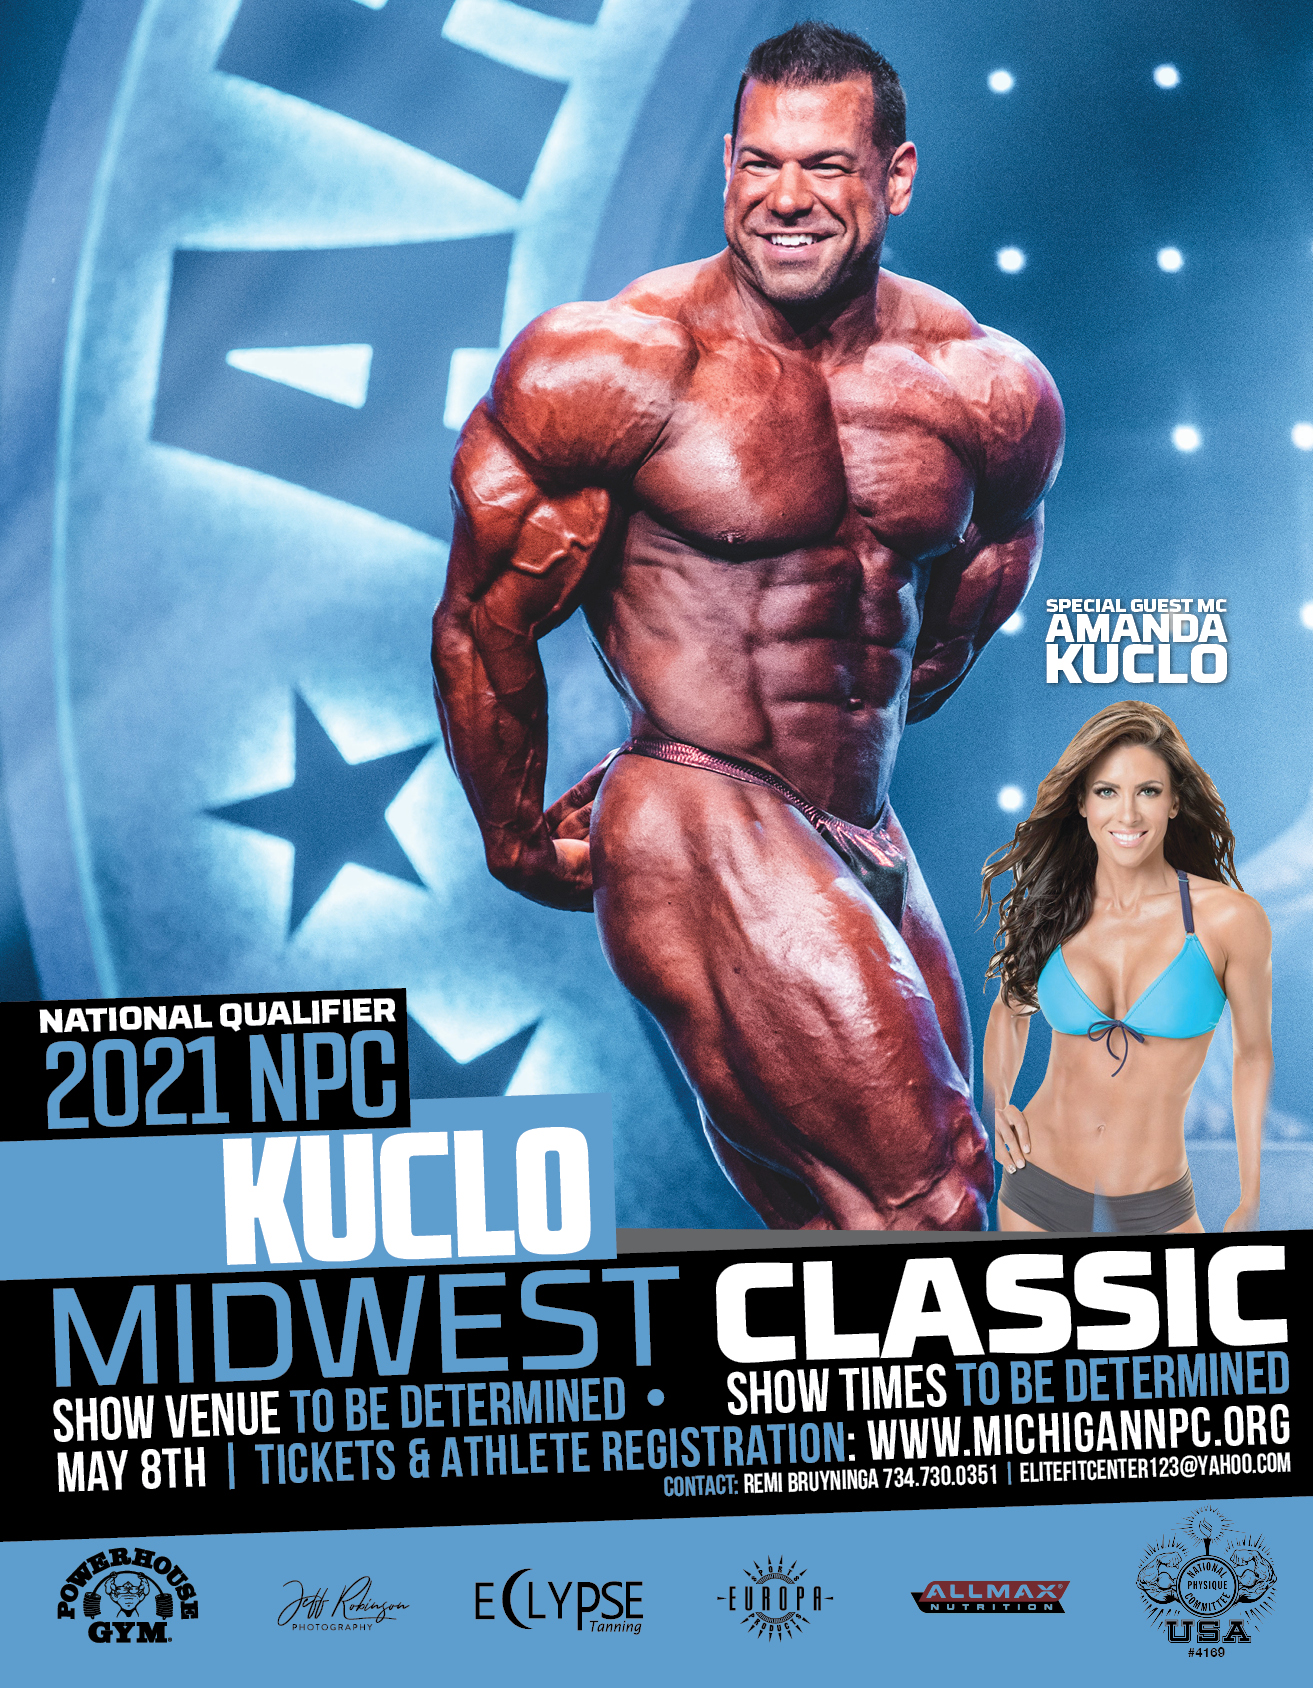 2021 NPC Kuclo Midwest Classic Poster